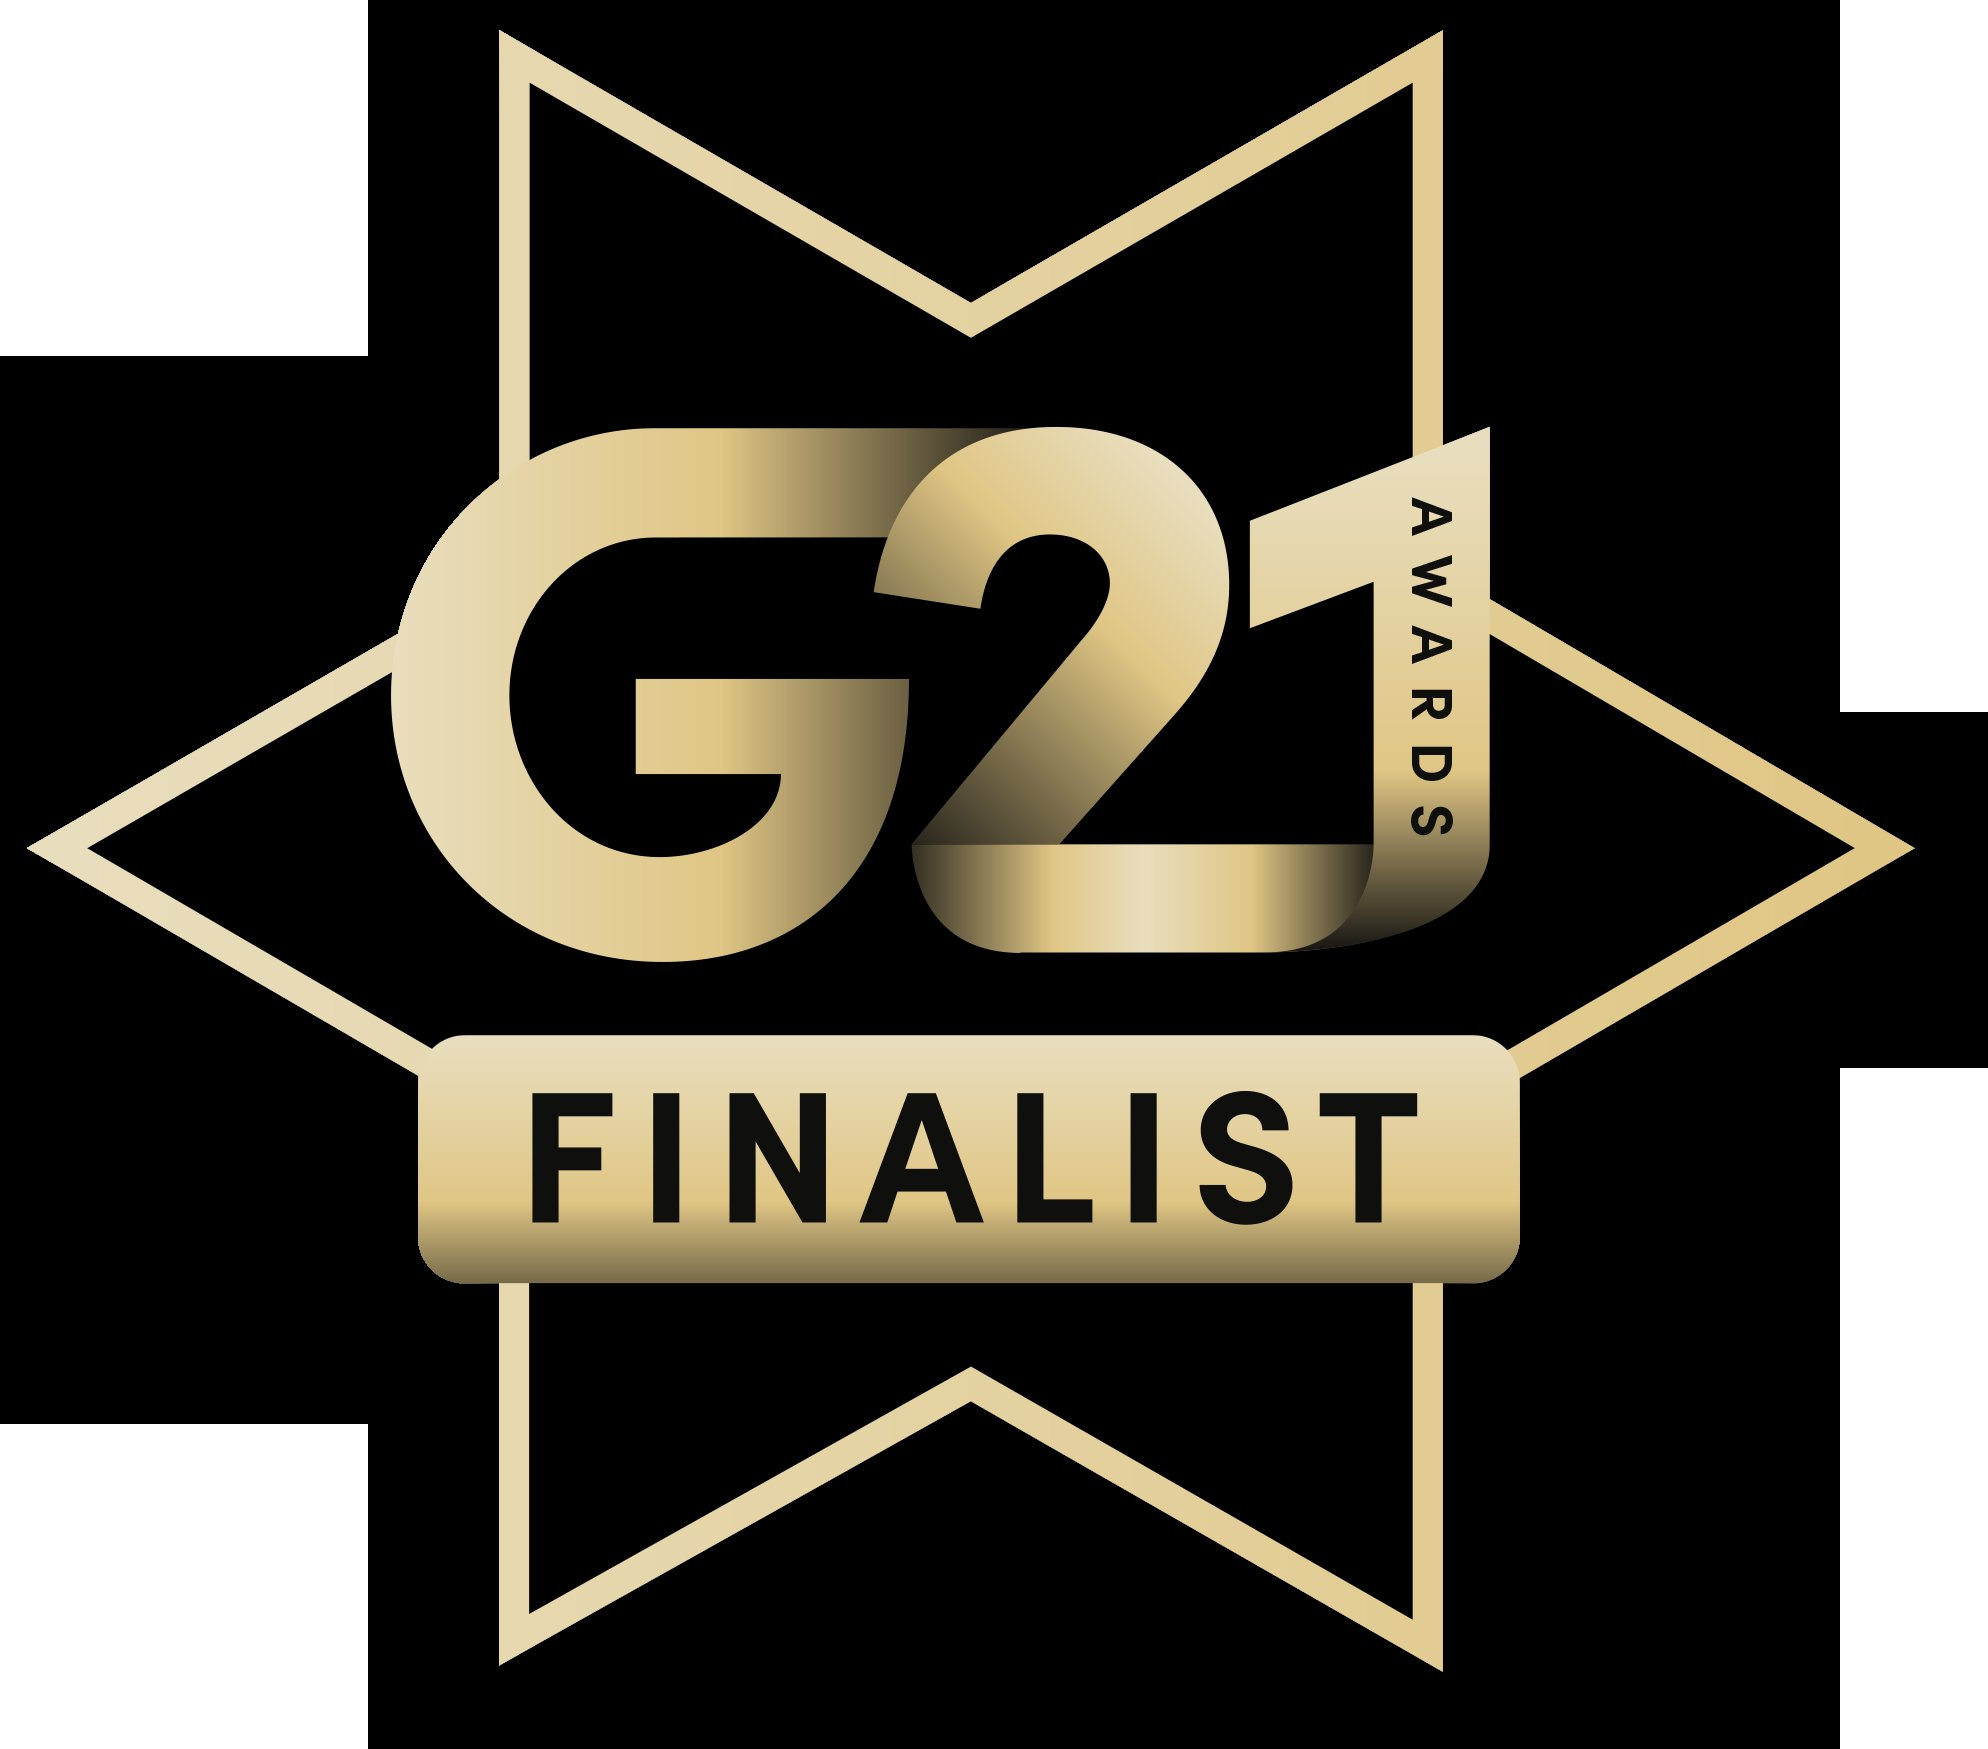 Liniar feeling double the love with G21 Award nominations